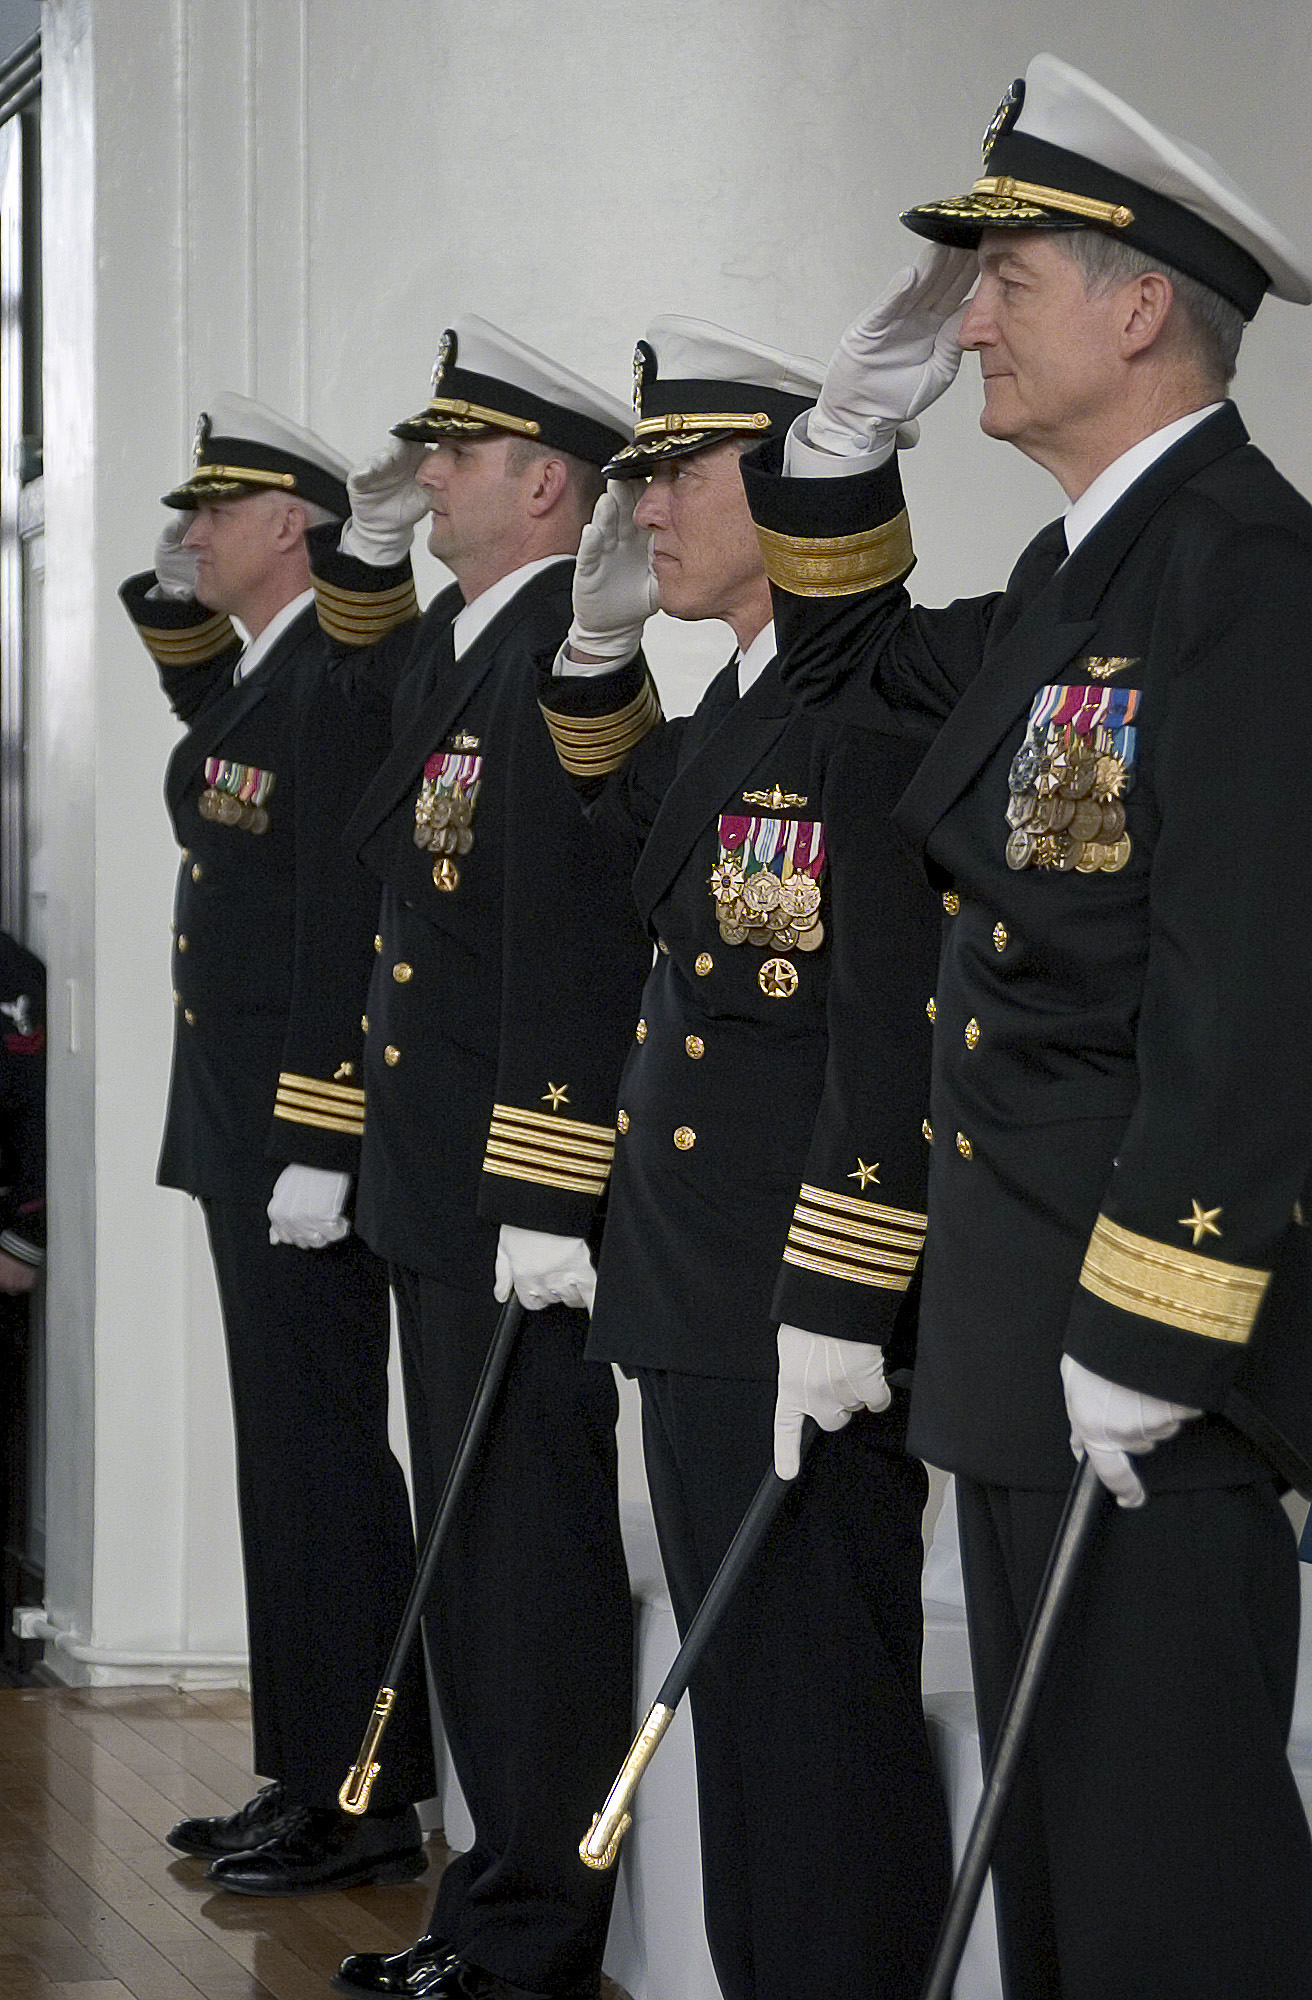 US Navy (USN) Commander (CDR) Wayne R. Freiberg (left), Chaplain; USN Captain (CAPT) Gregory J. Cornish, Commanding Officer (CO), prospective Commander Fleet Activities Yokosuka (CFAY); USN CAPT King H. Dietrich, CFAY CO; and USN Rear Admiral (RDML) (lower half) James D. Kelly (right), Commander Carrier Strike Group 5 (CSG-5) salute the colors as the National Anthems of Japan and the United States are sung during the CFAY change of command ceremony. USN CAPT Cornish relieved USN CAPT Dietrich as CFAY Commanding Officer